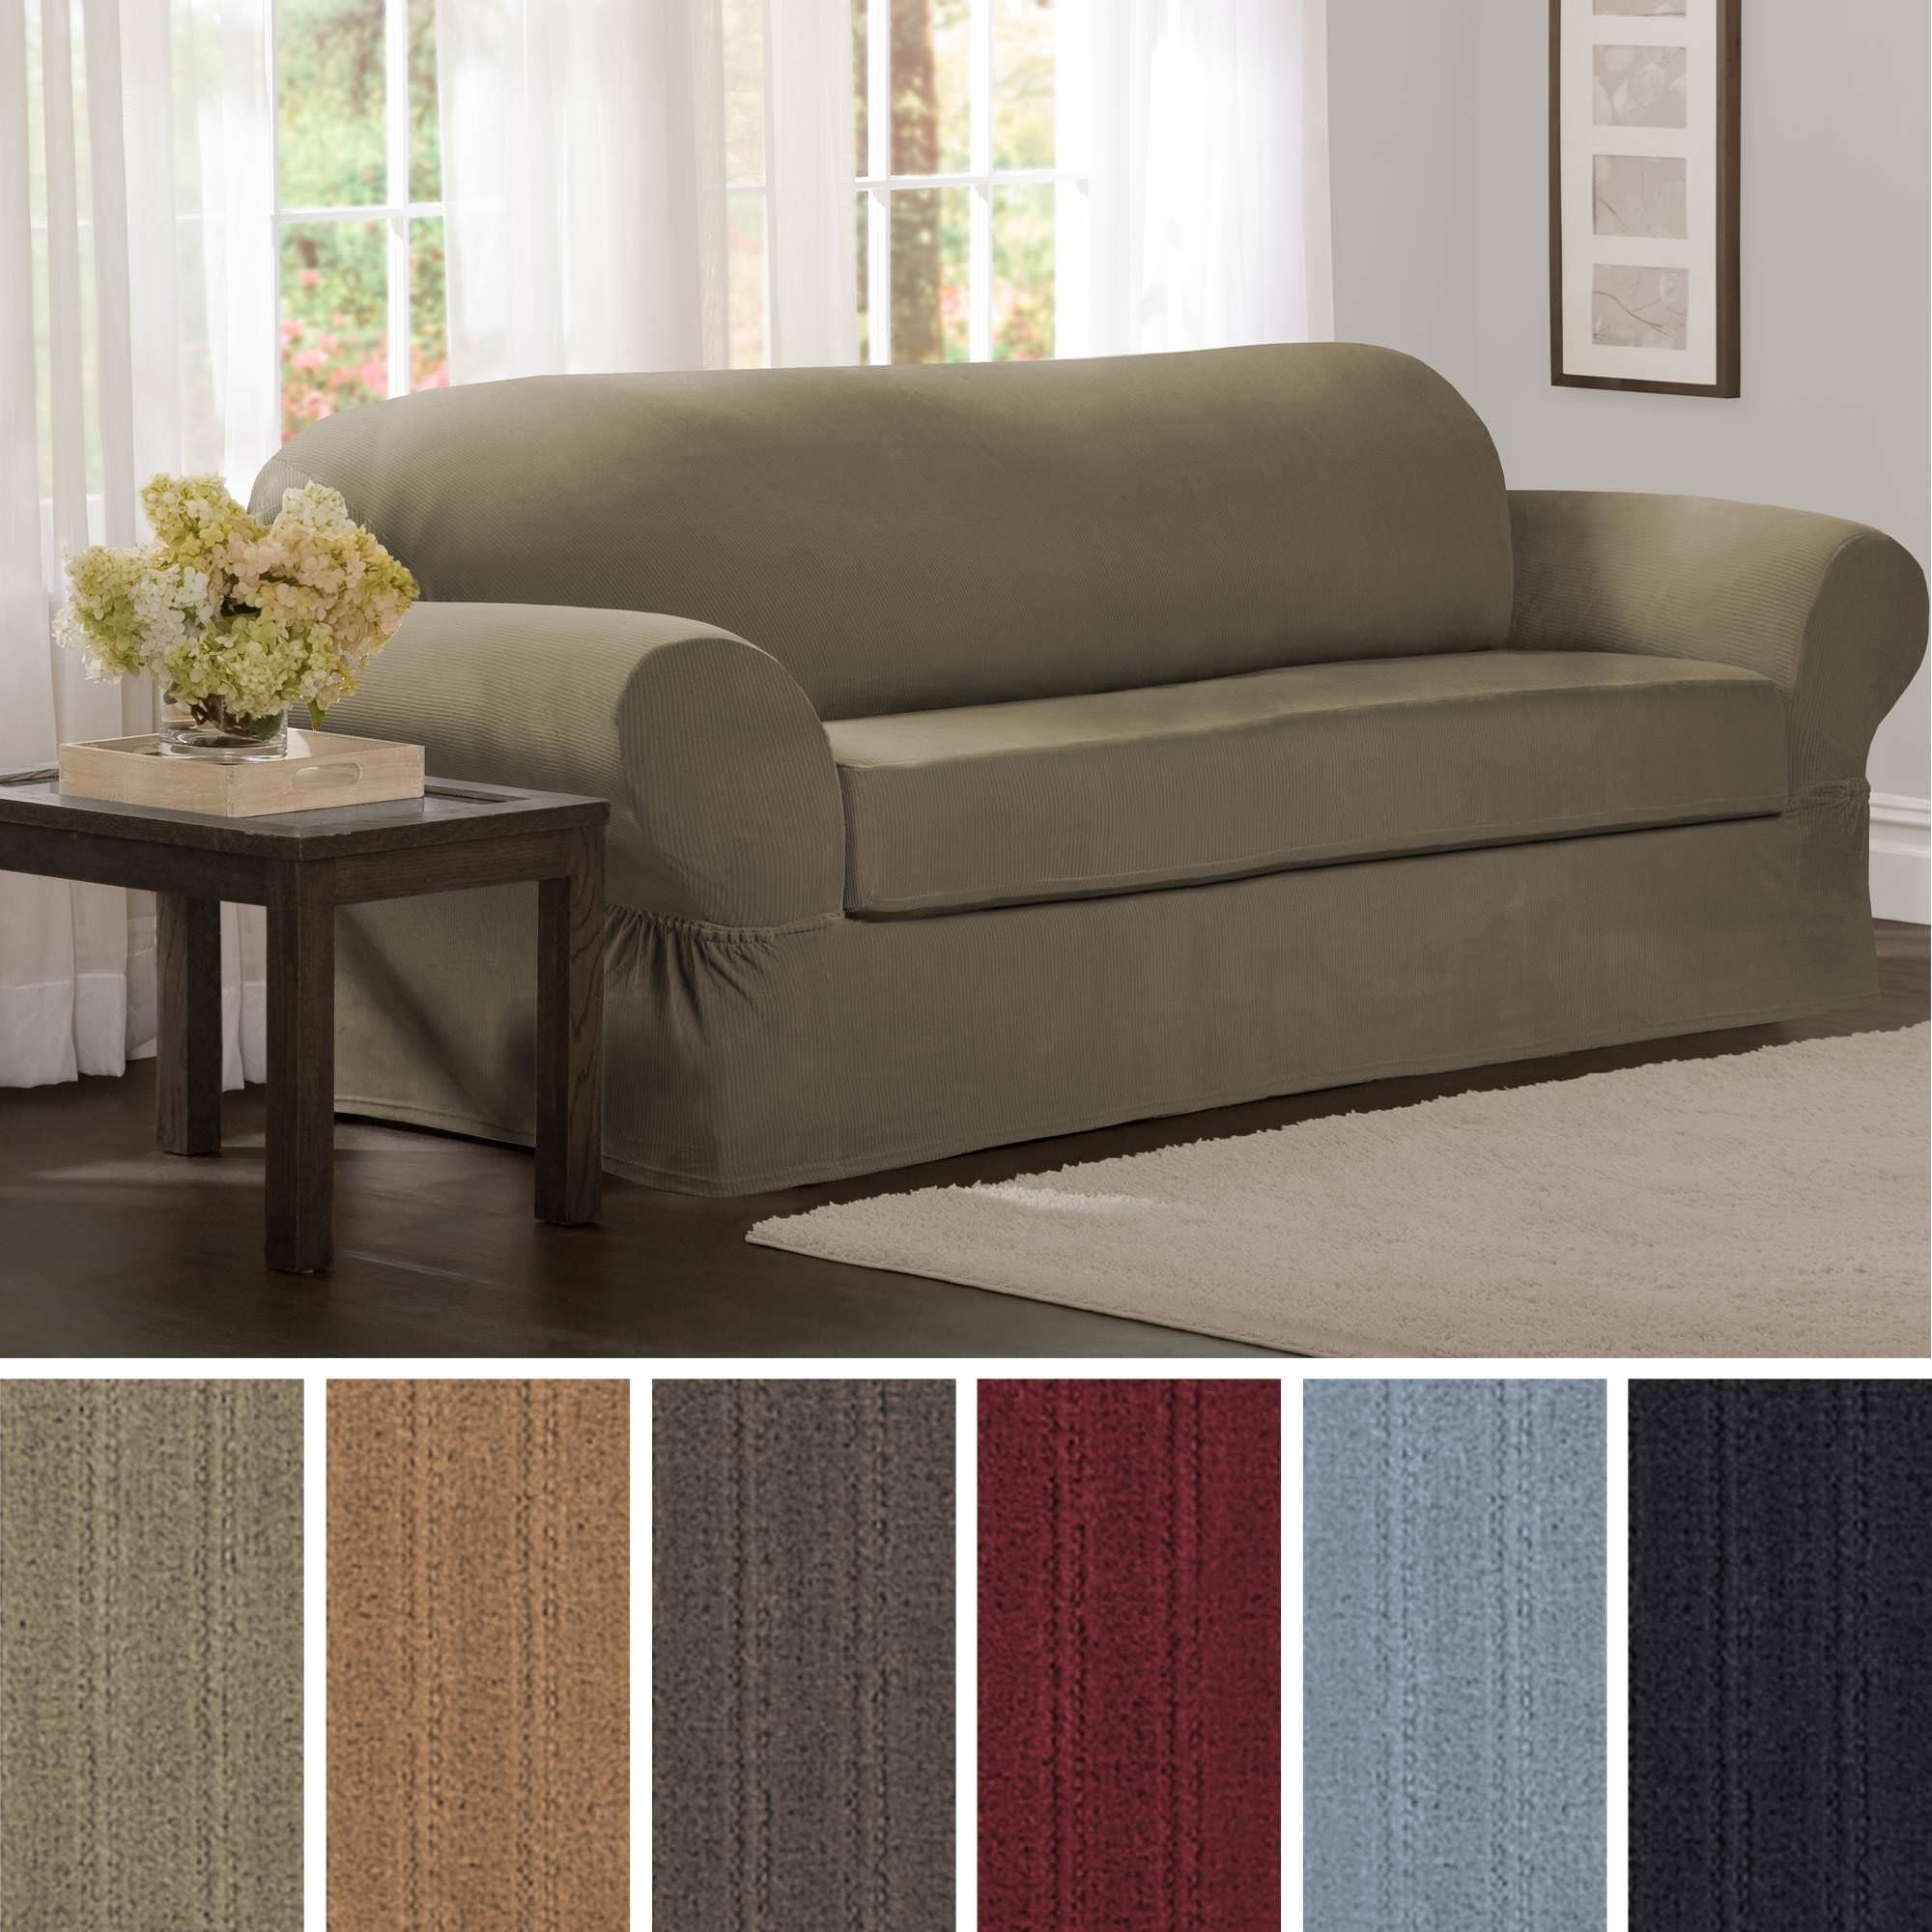 Details About Maytex Collin 2 Piece Sofa Slipcover 74 96 Wide 34 High 38 Deep